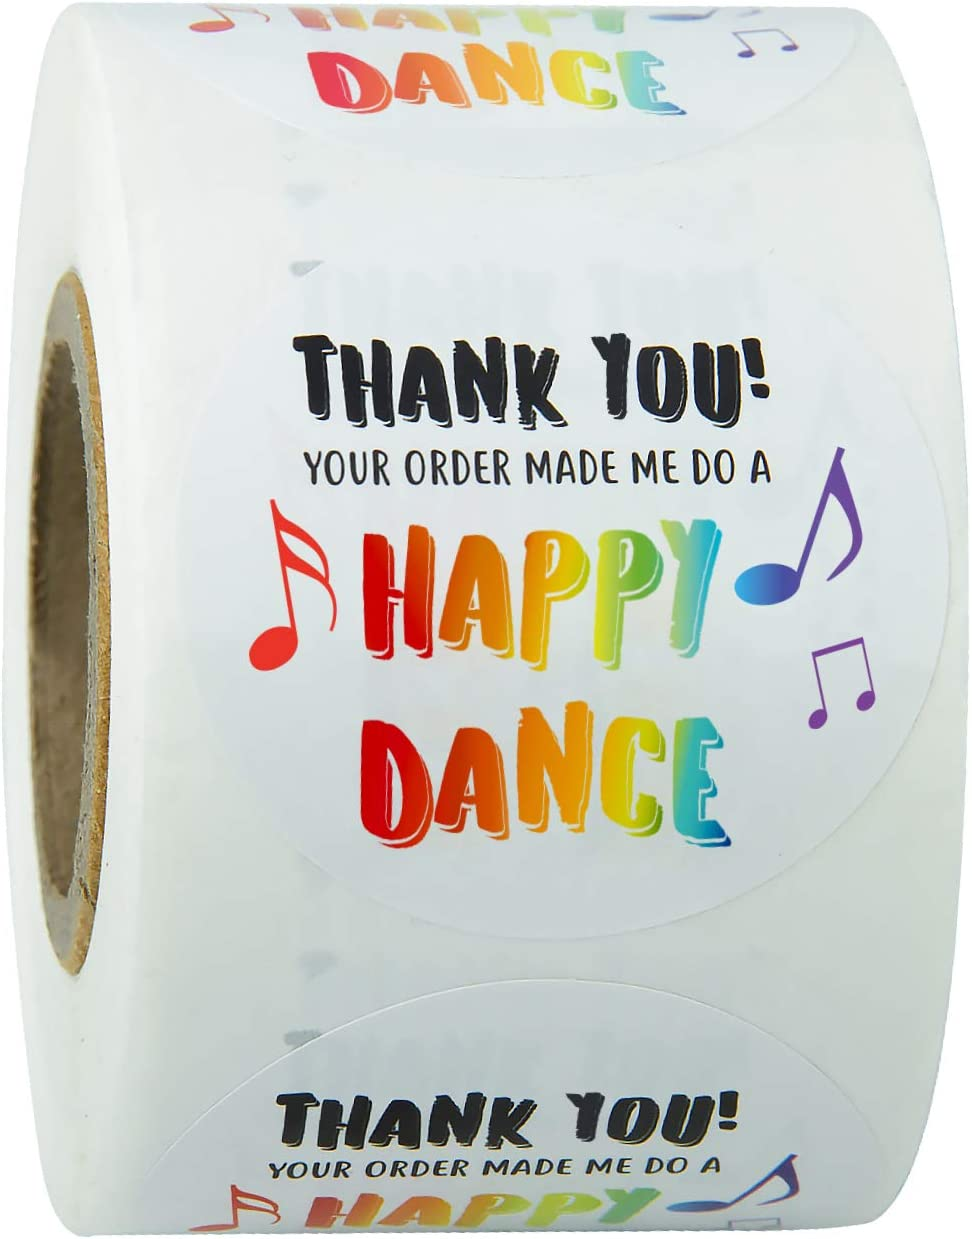 WRAPAHOLIC Thank You Business Stickers - Thank You Your Order Made Me Do A Happy Dance Business Stickers, Shipping Stickers - 2 x 2 Inch 500 Total Labels